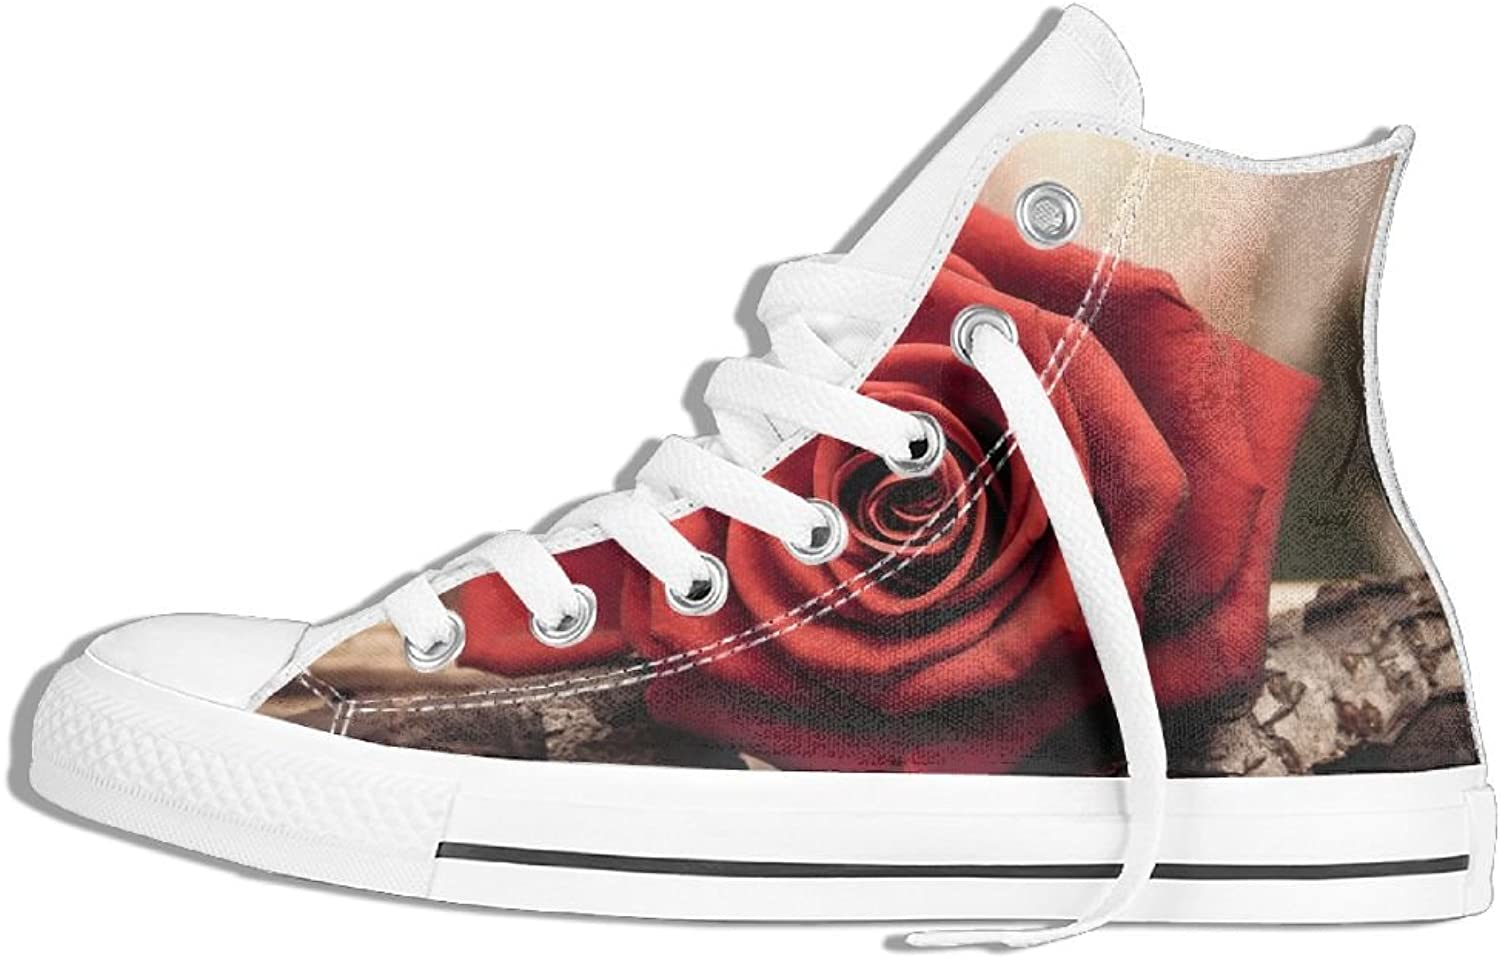 HDMEI Unisex High-Top Sneakers shoes pink Wood Lace Up Anti-slip Canvas Casual Soft Trainers shoes